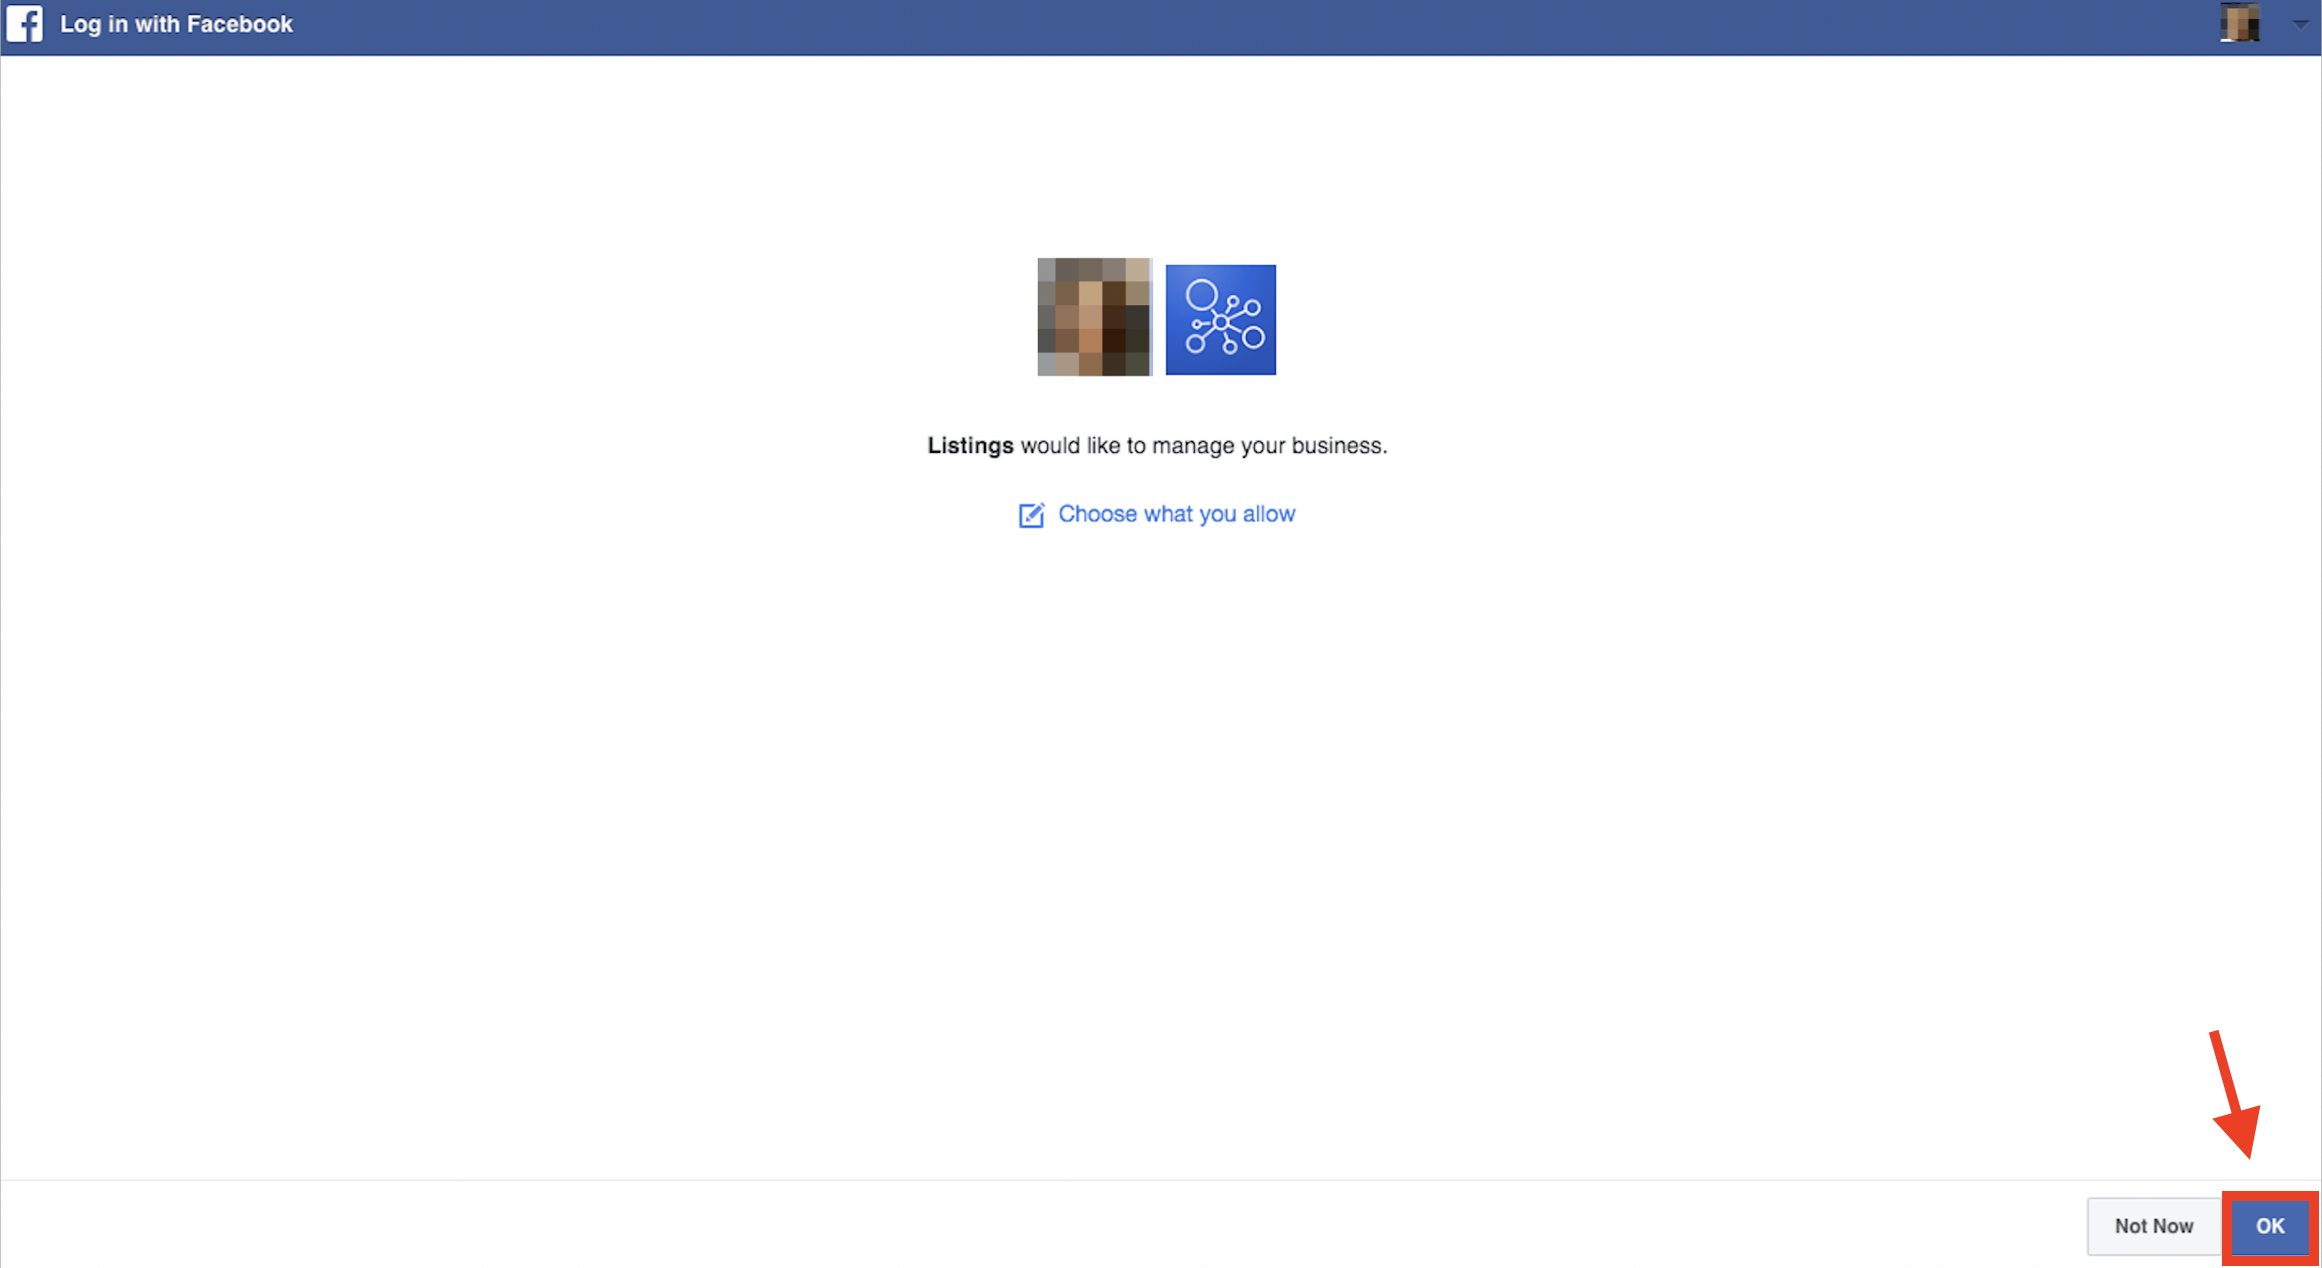 Connecting Facebook and Google My Business to Listing Management image 3